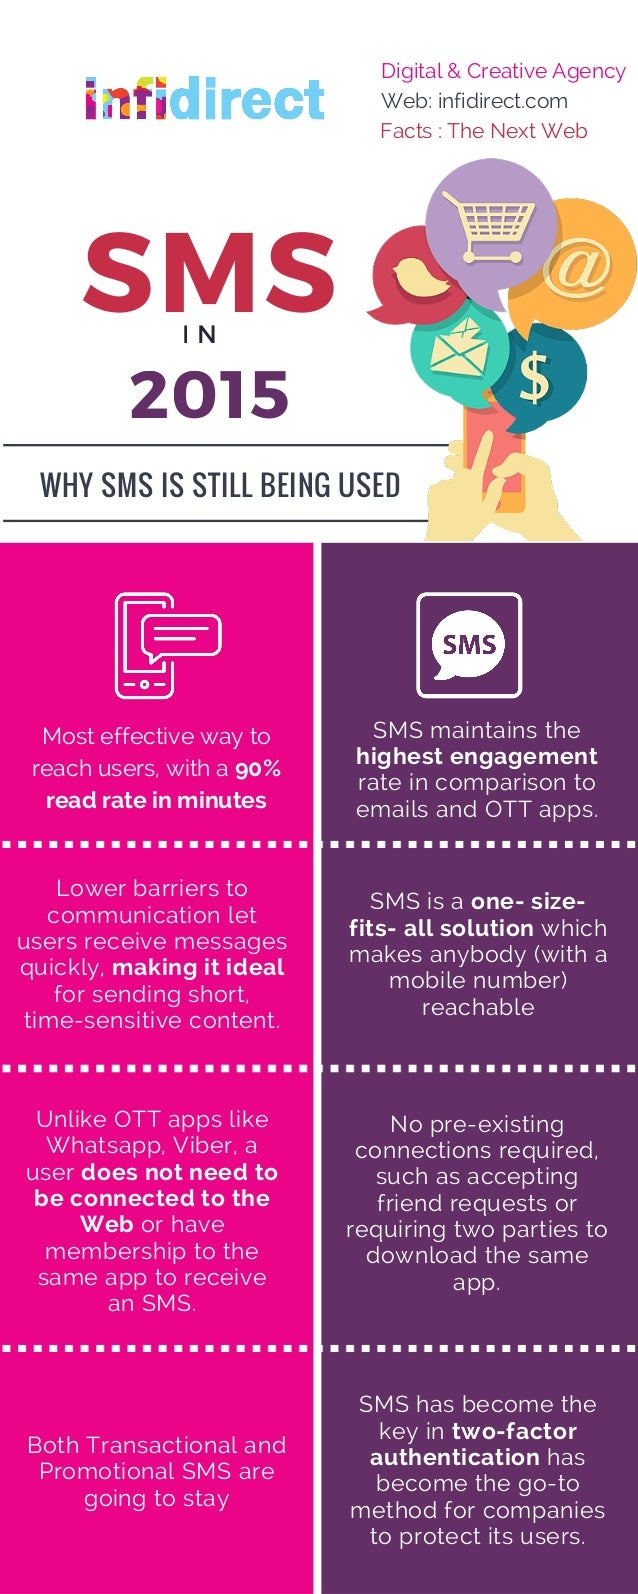 SMS 2015 SMS maintains the highest engagement rate in comparison to emails and OTT apps. Lower barriers to communication l...